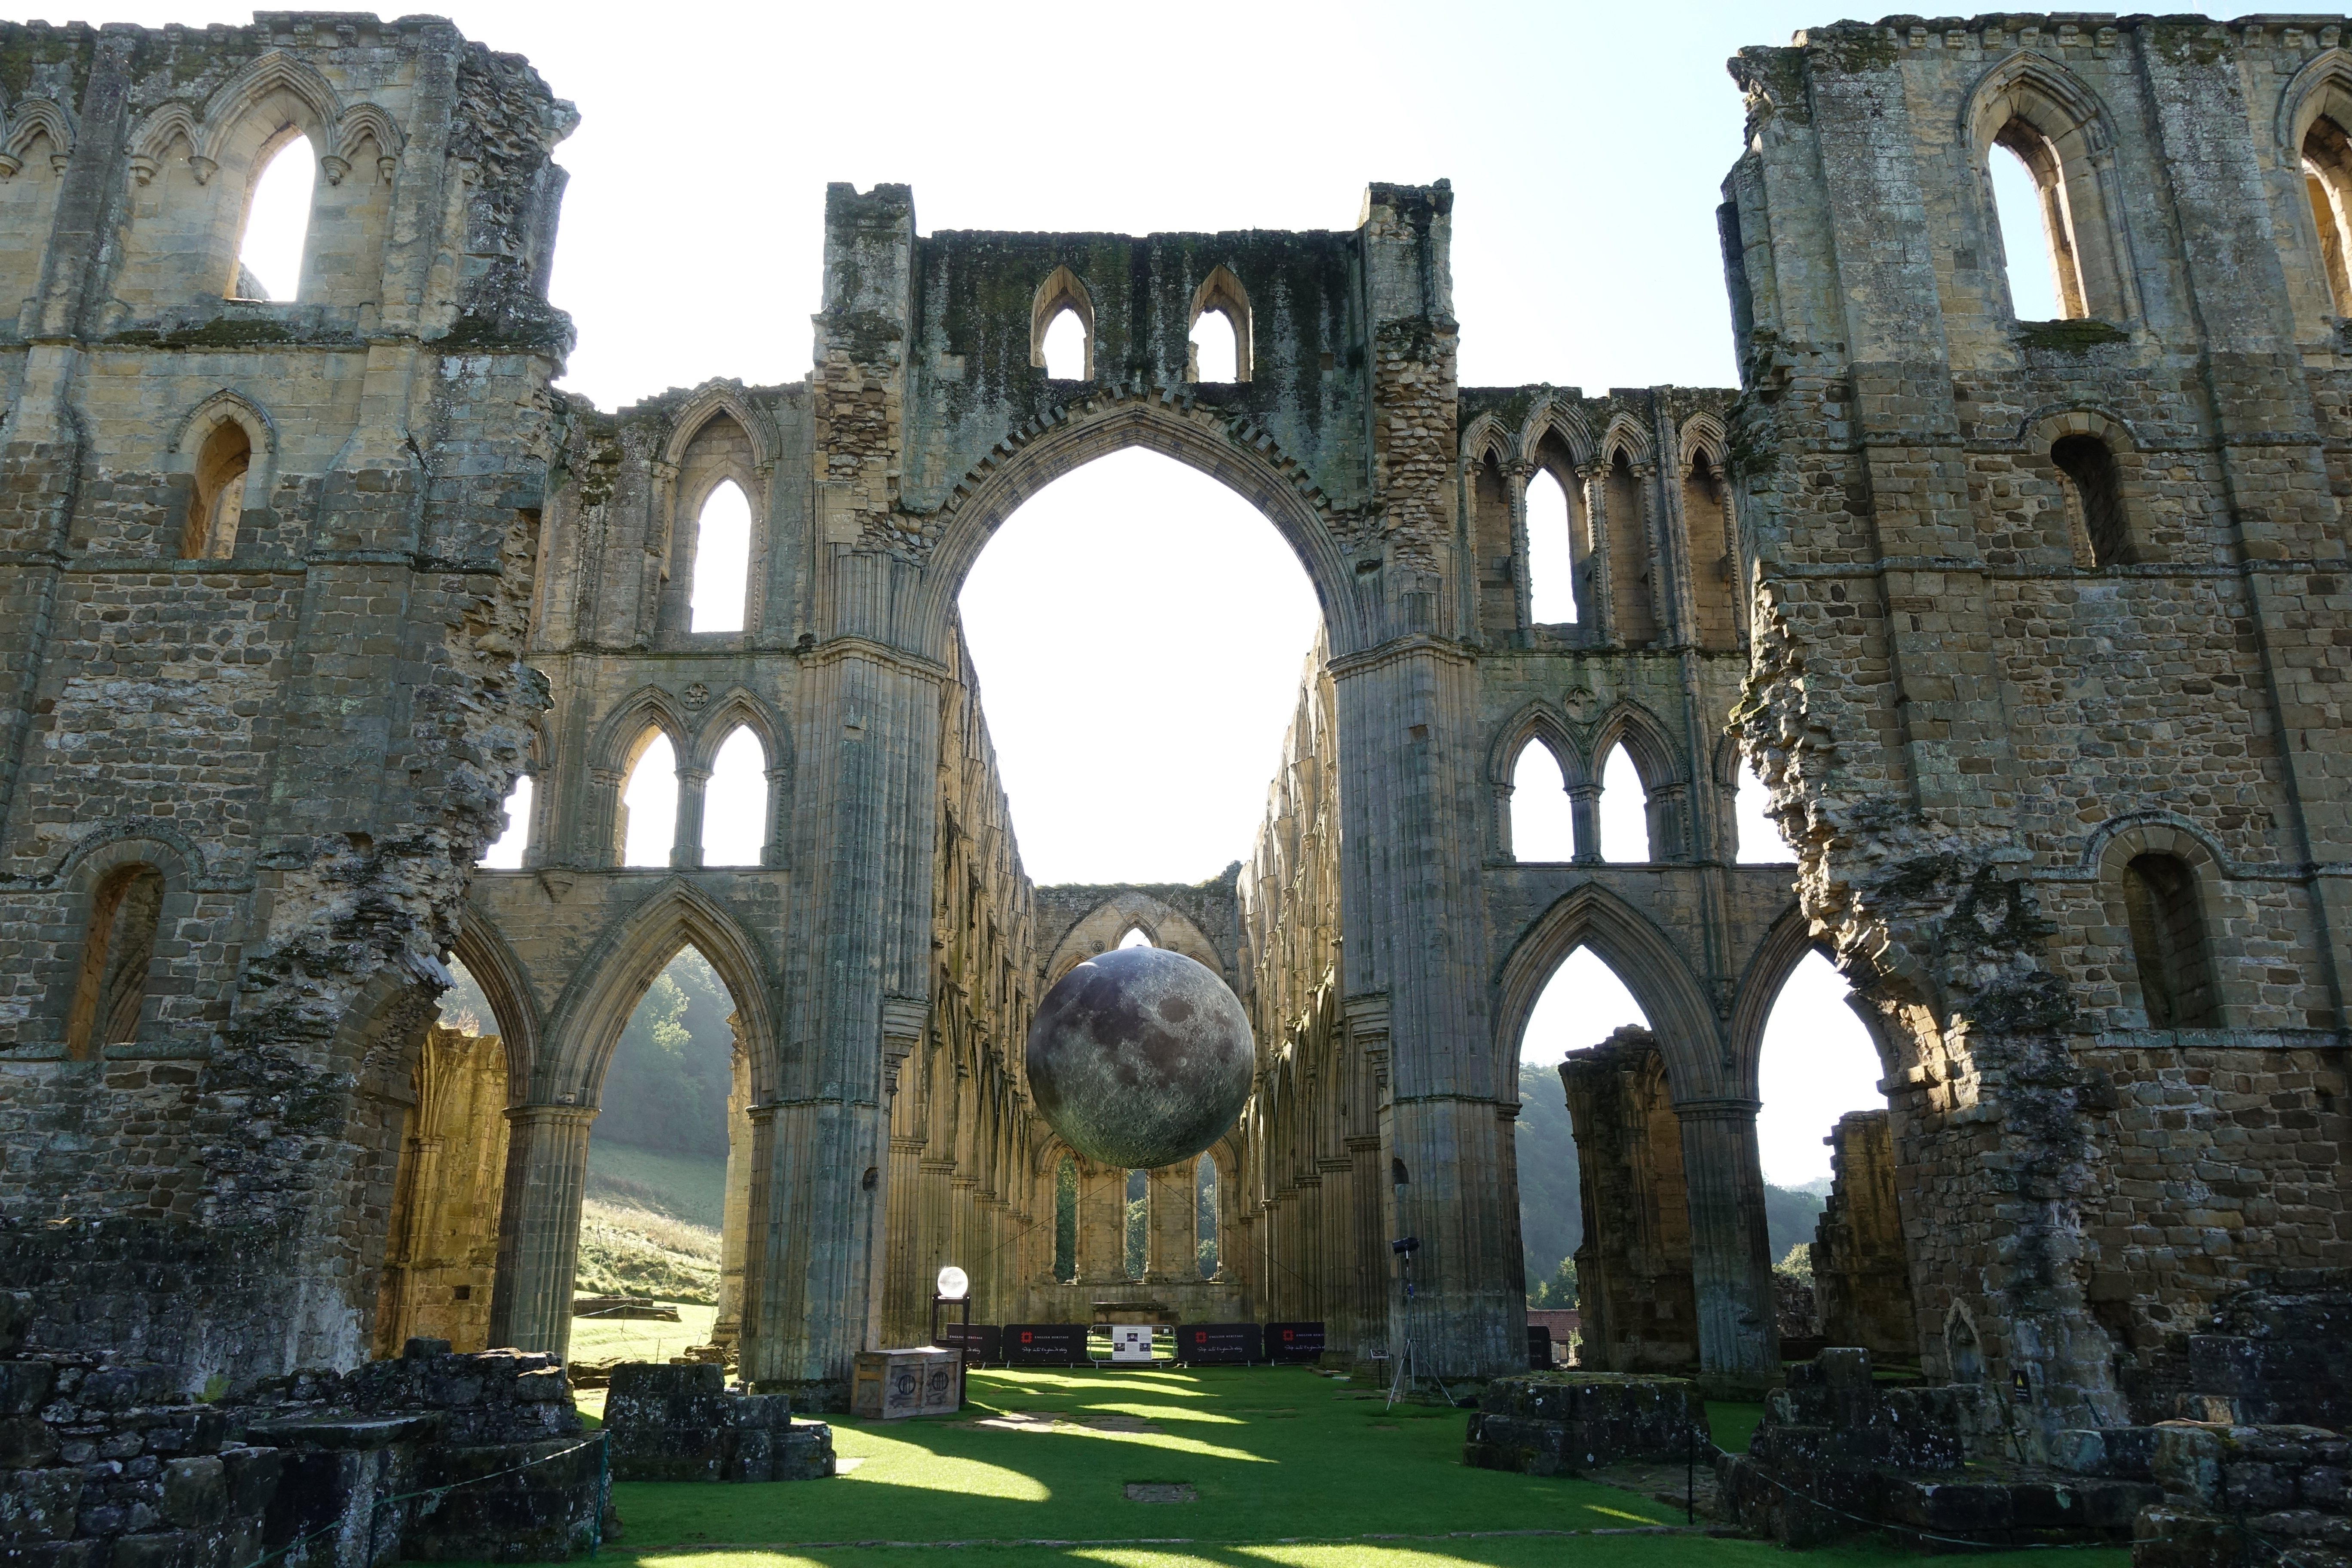 Museum of the moon installed within the ruins of Rievaulx Abbey